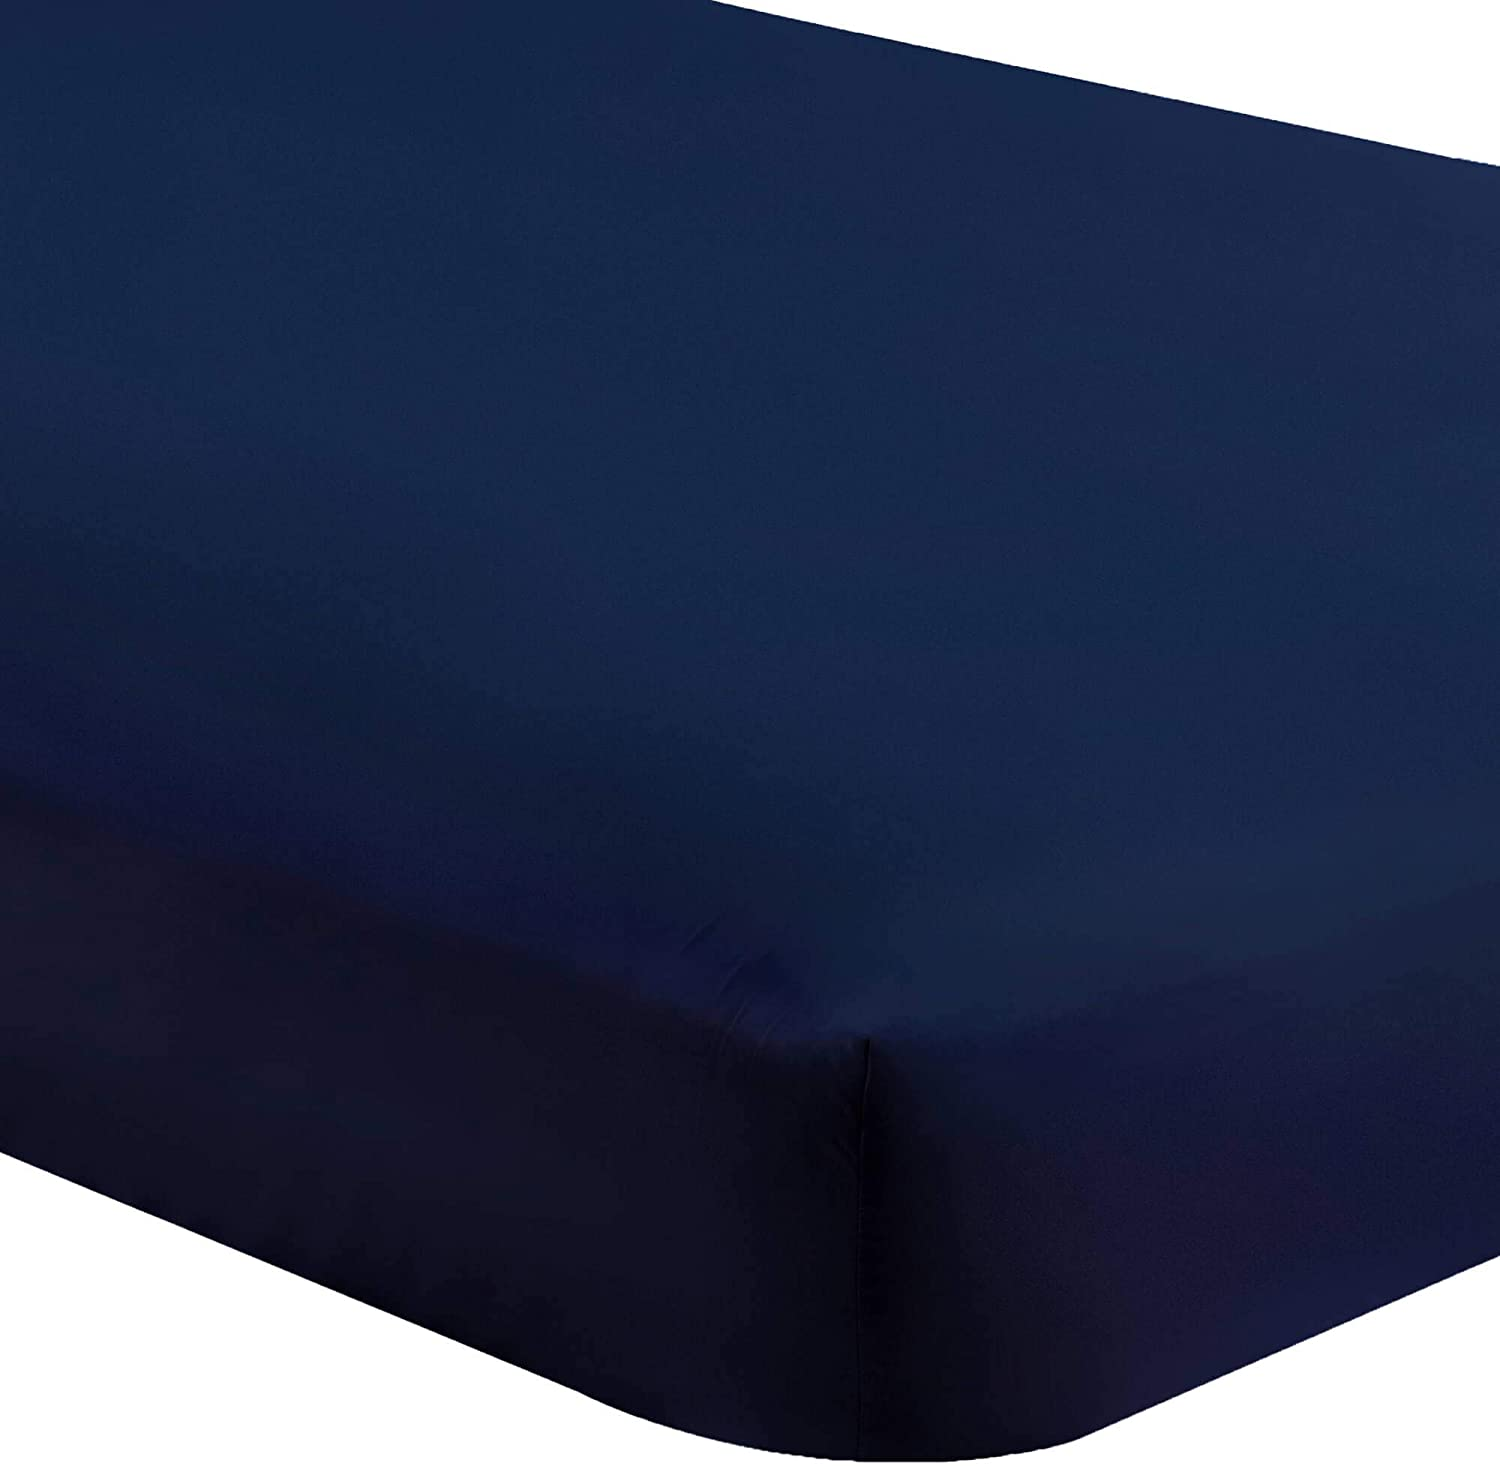 """Bare Home 5 Twin XL Fitted Premium Ultra-Soft Bed Sheets (5-Pack) - Hypoallergenic, Twin Extra Long, 15"""" Deep Pocket, 39"""" x 80"""" (Twin XL, Dark Blue)"""